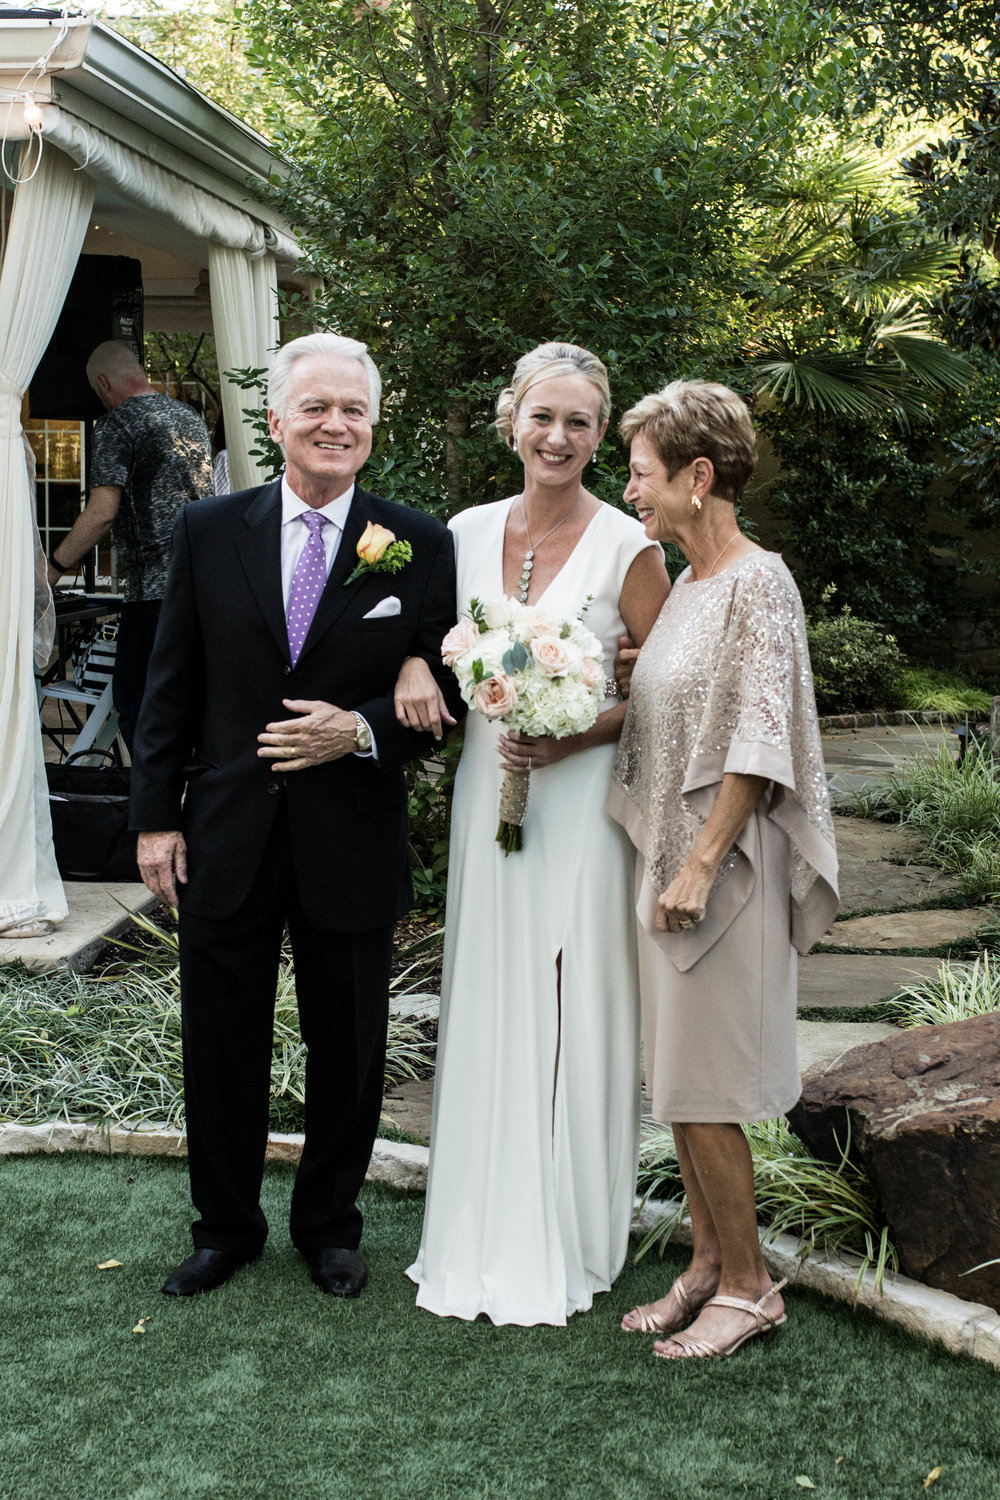 Rebecca's parents walked her down the aisle.